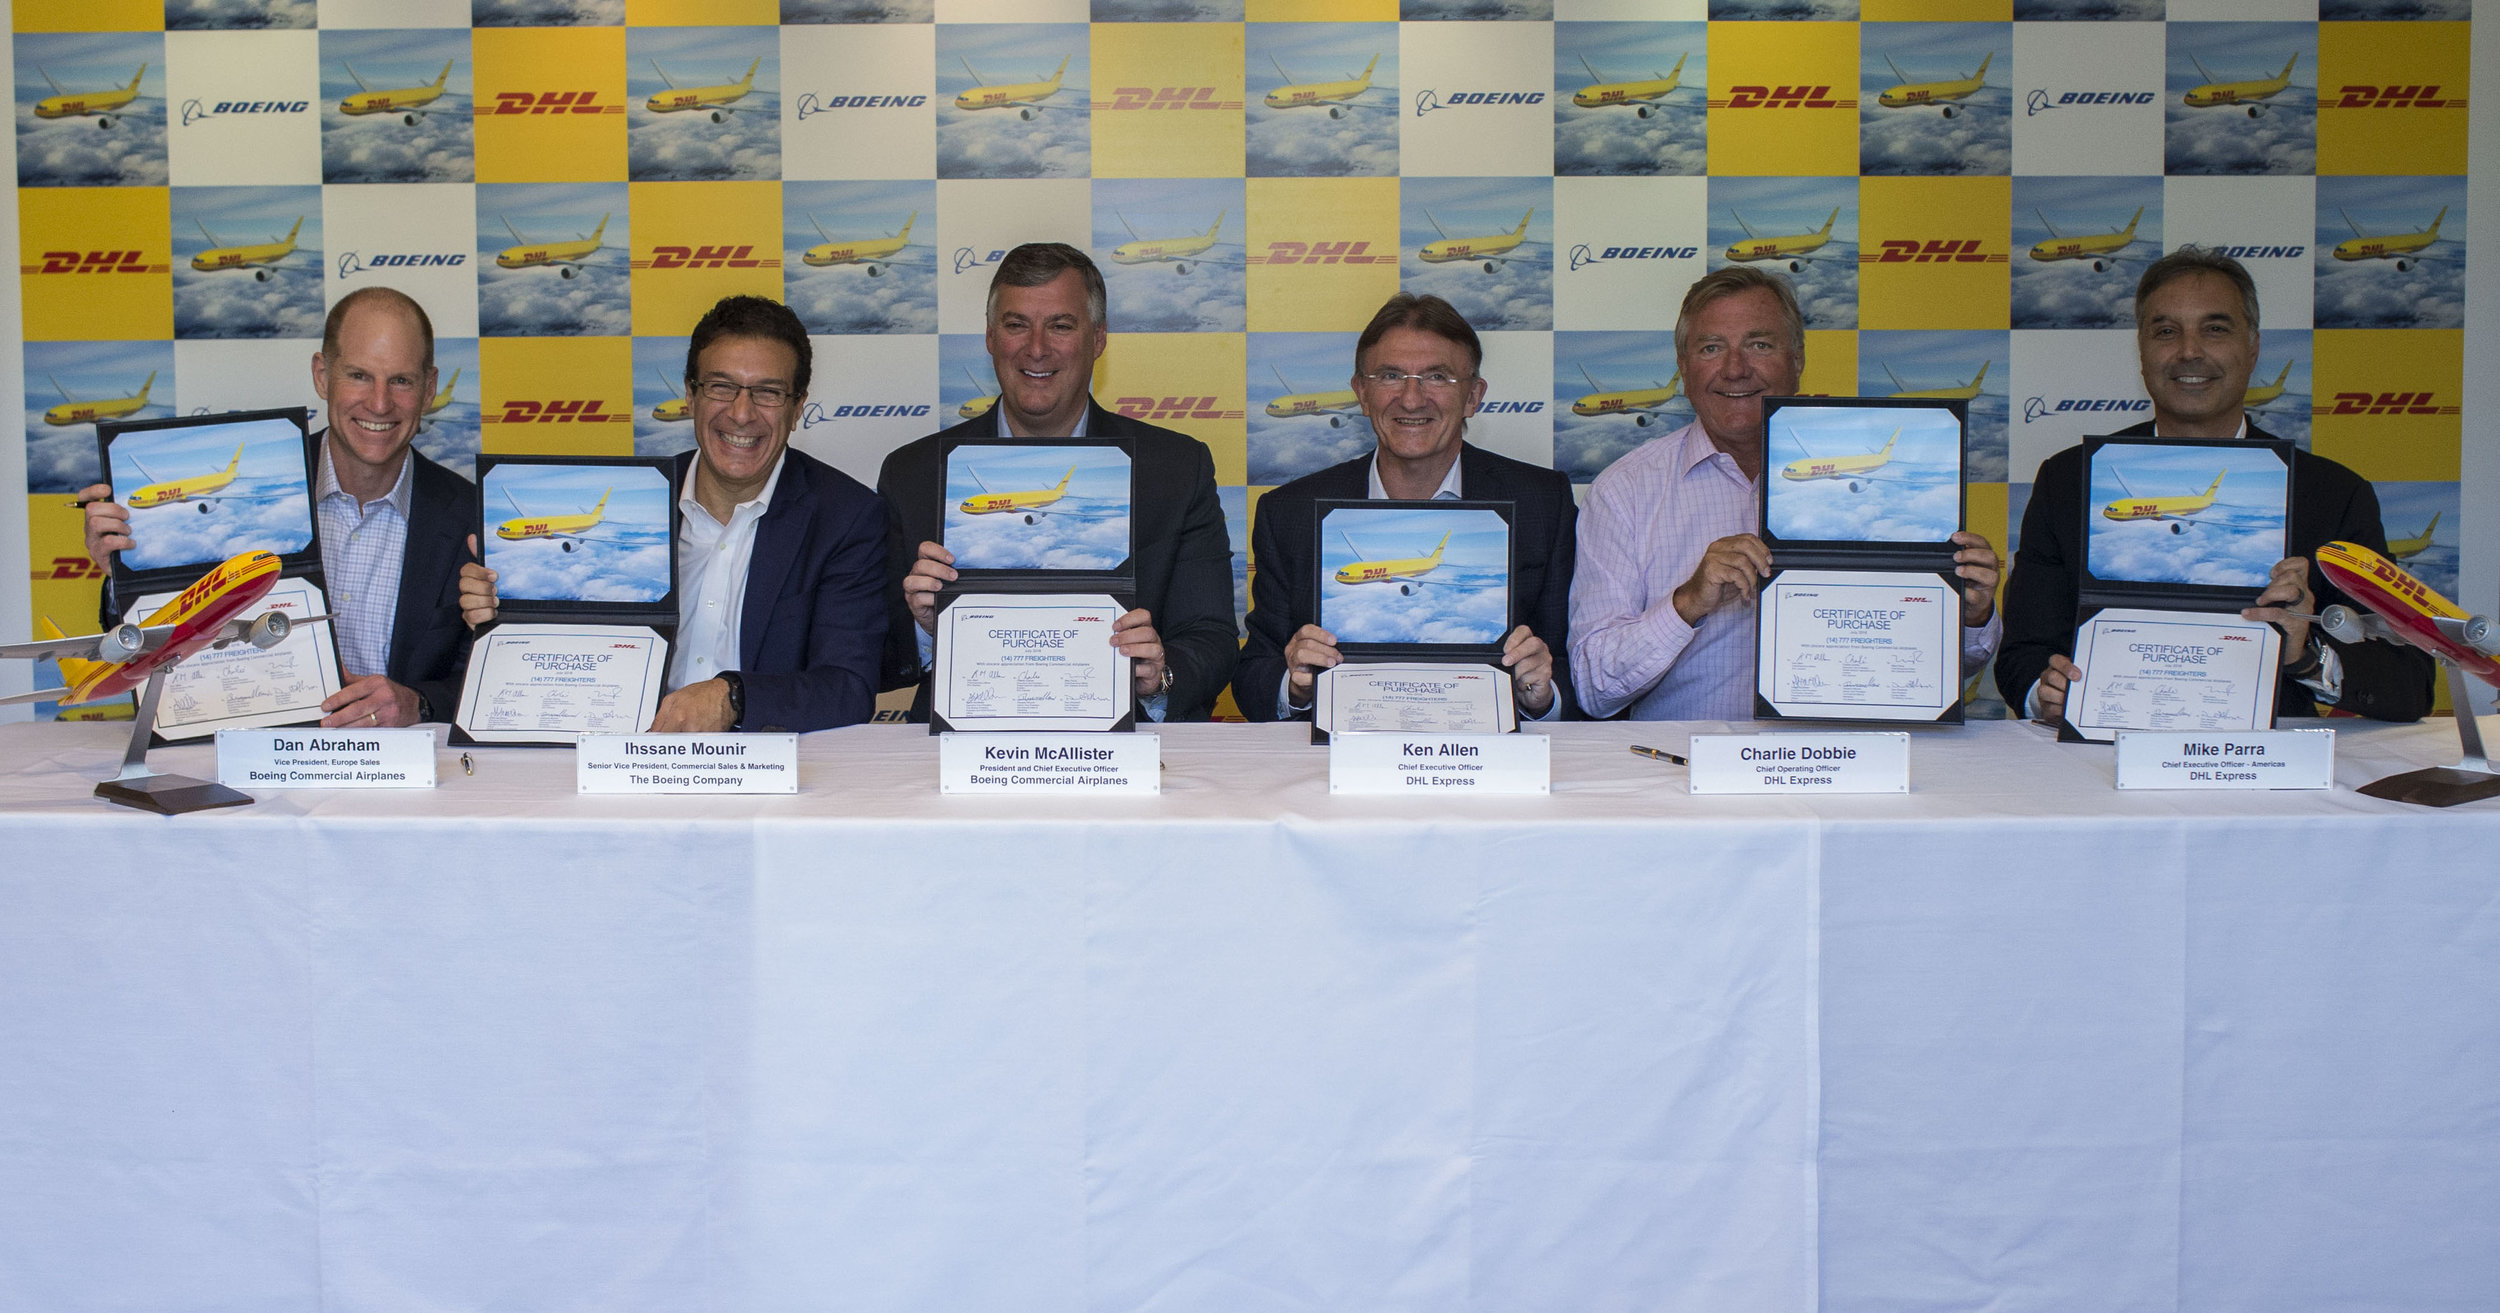 DHL Express Purchase Boeing 777 - Signing Ceremony 150718 - 1.jpg